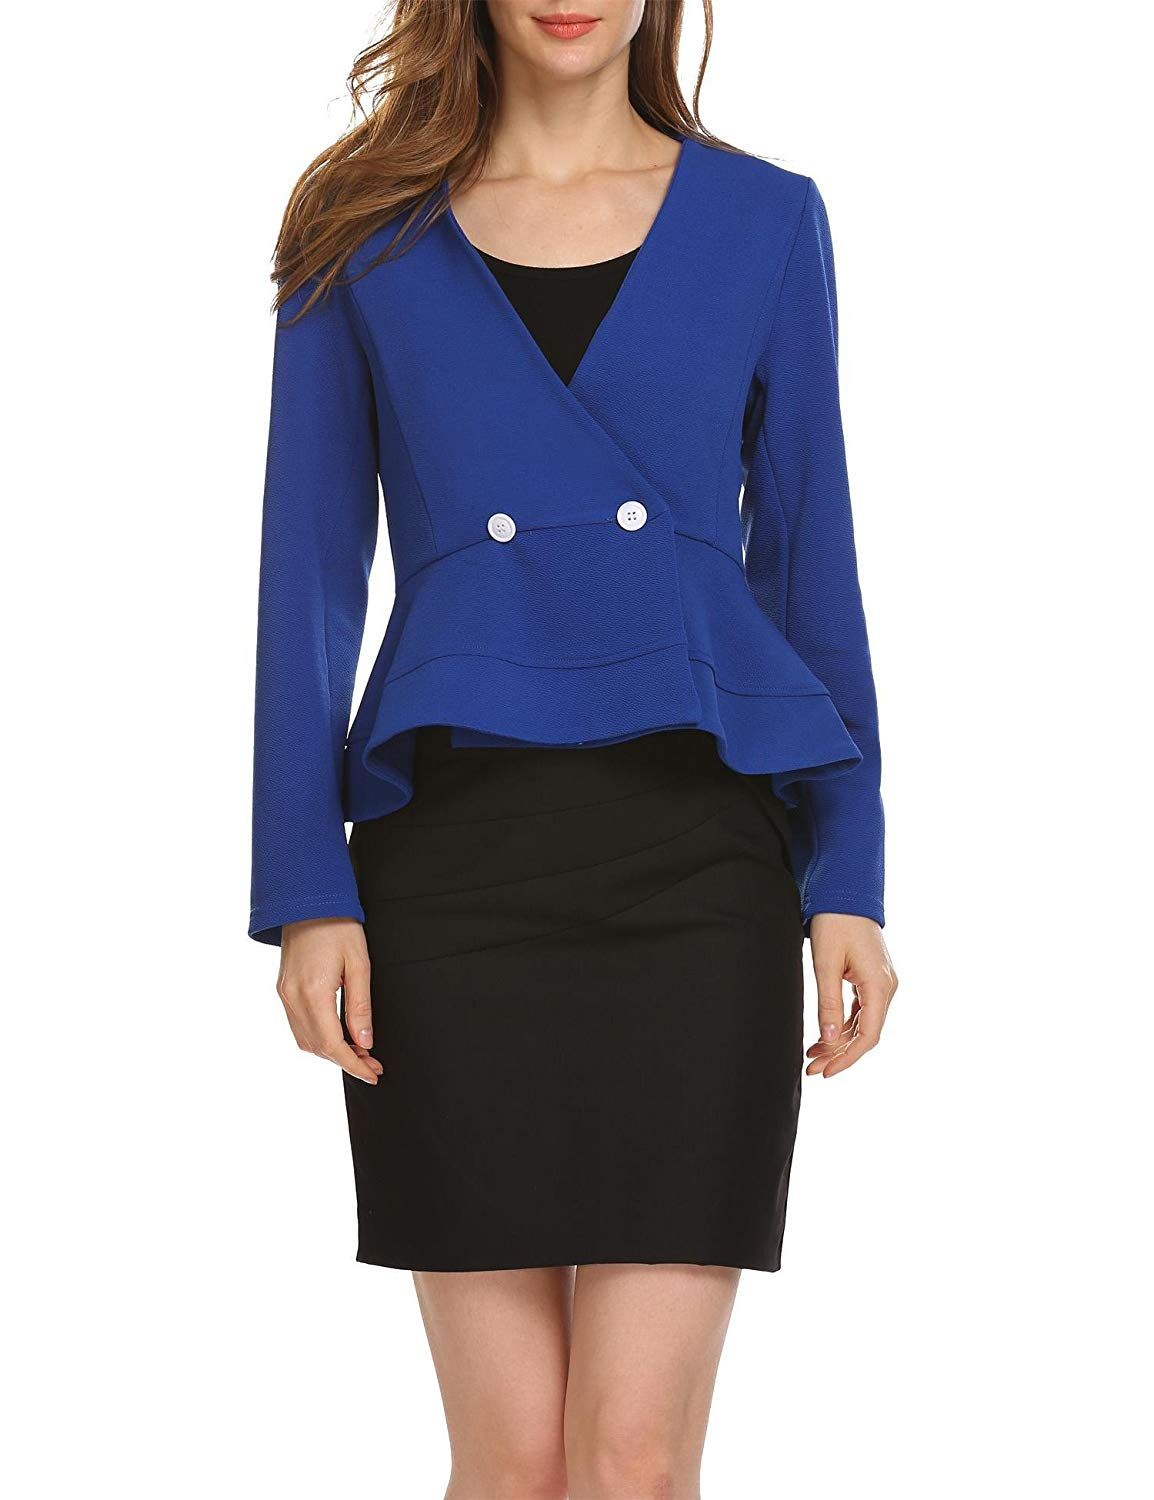 311263c63926e Get Quotations · ANGVNS Women s Long Sleeve Blazer Front Plain Peplum Frill  Work Office Peplum Jacket